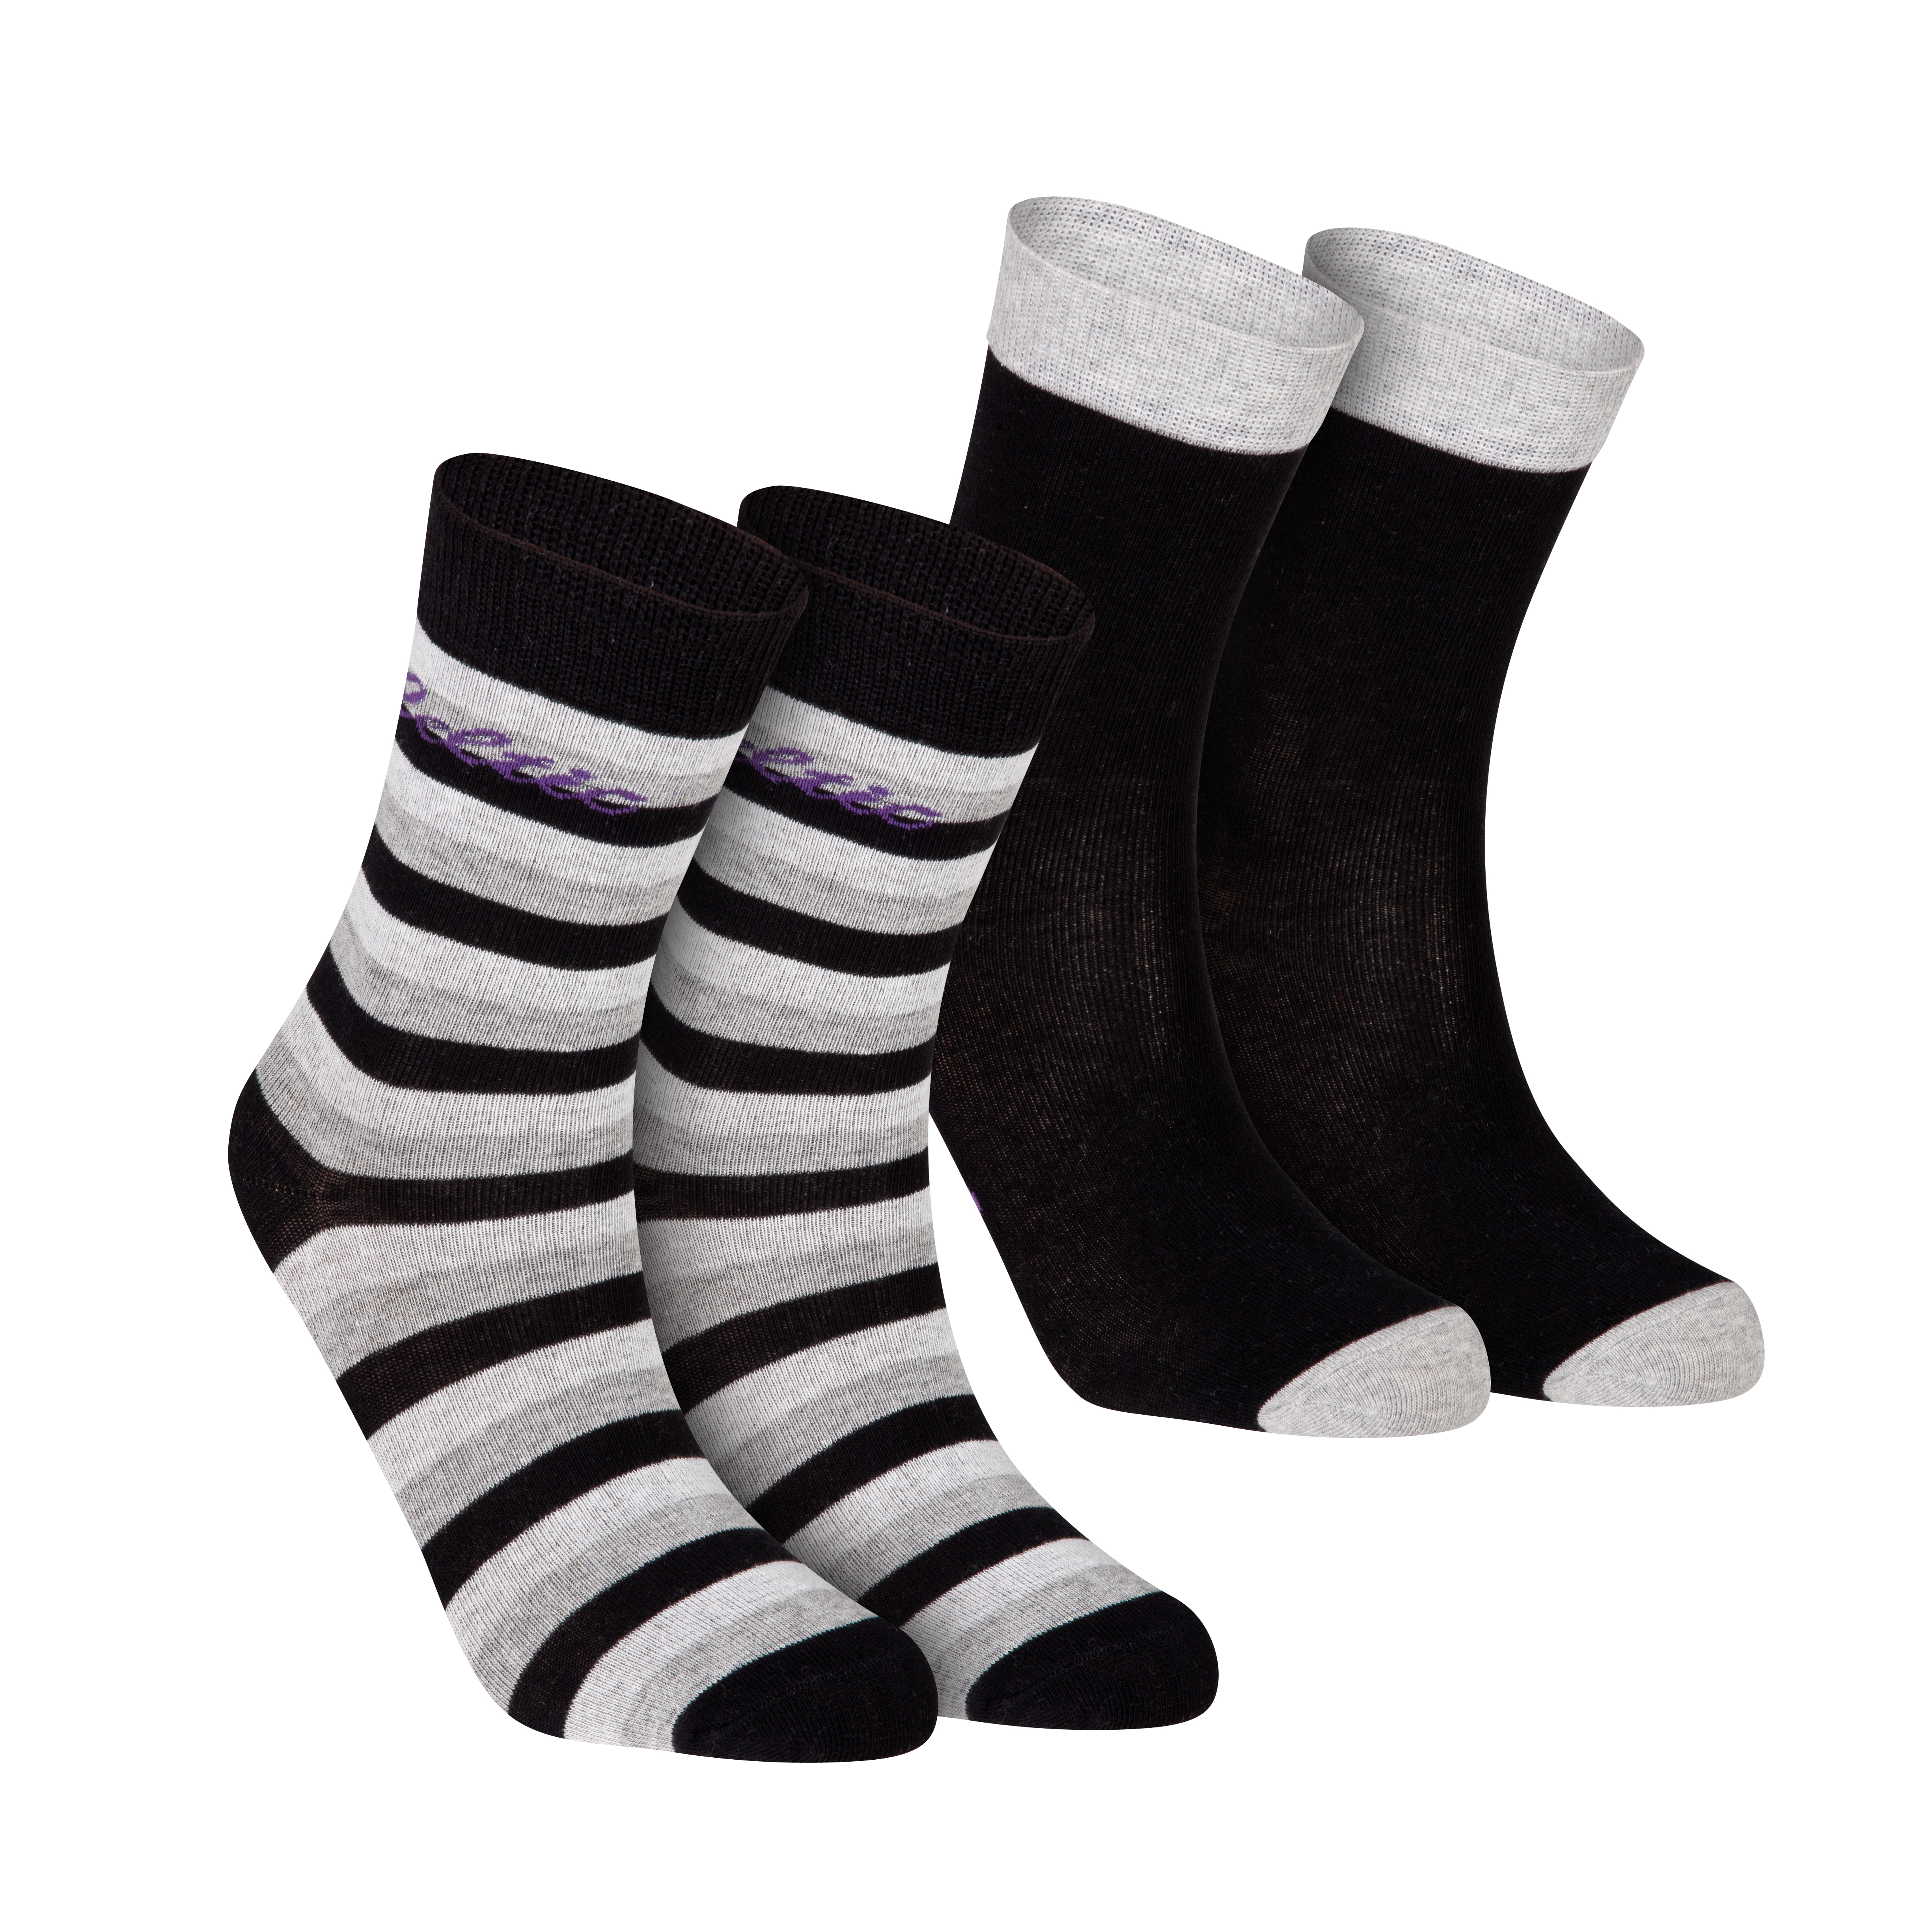 Celtic 2 Pack Dress Socks - Black - Womens